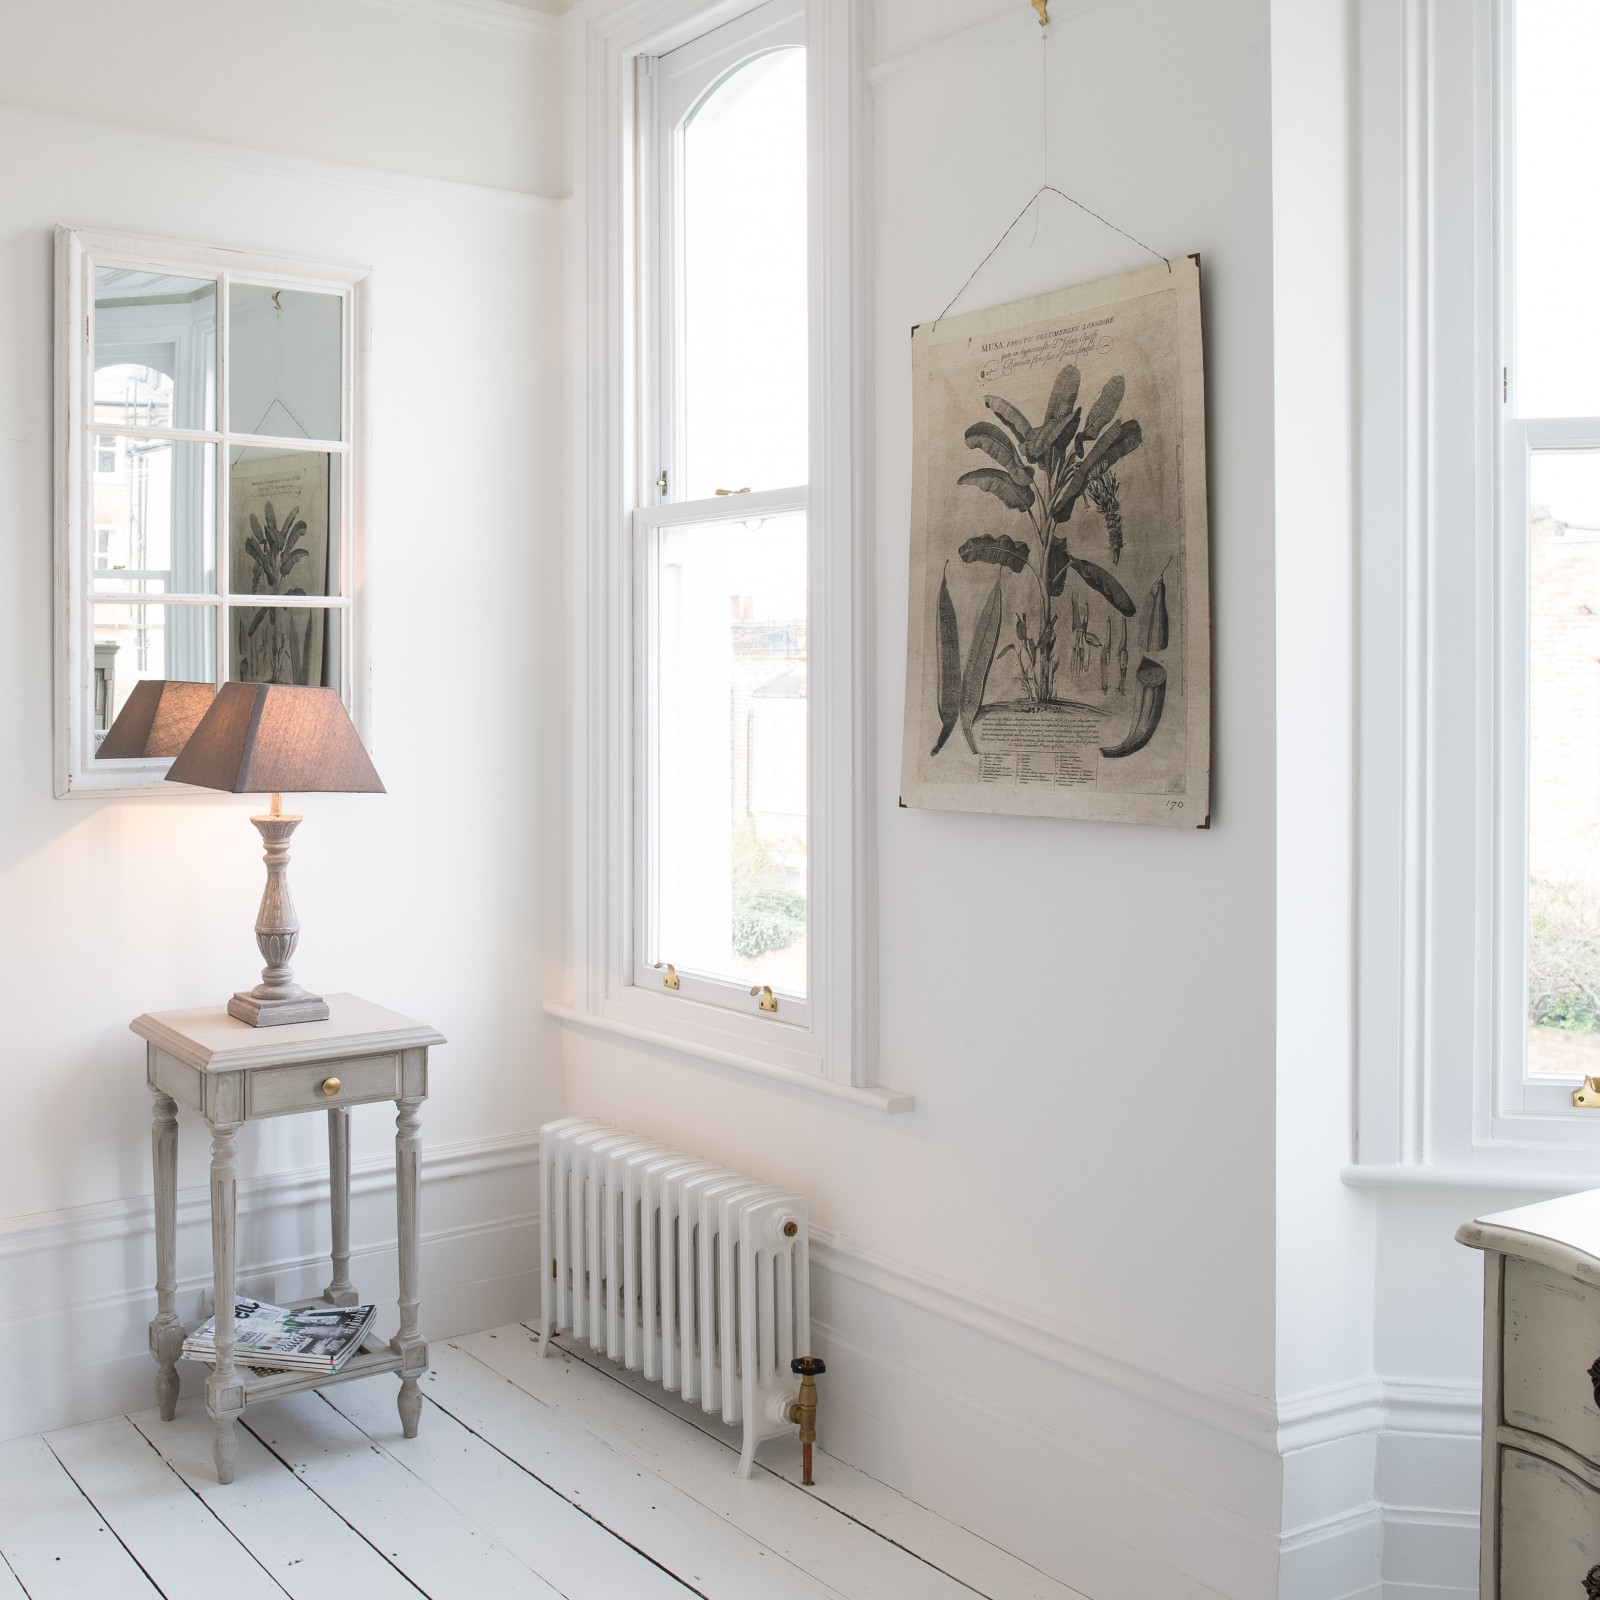 lighting from £50 - Discover our selection of light fittings and transform any room at home. Enjoy your life in a whole new light!